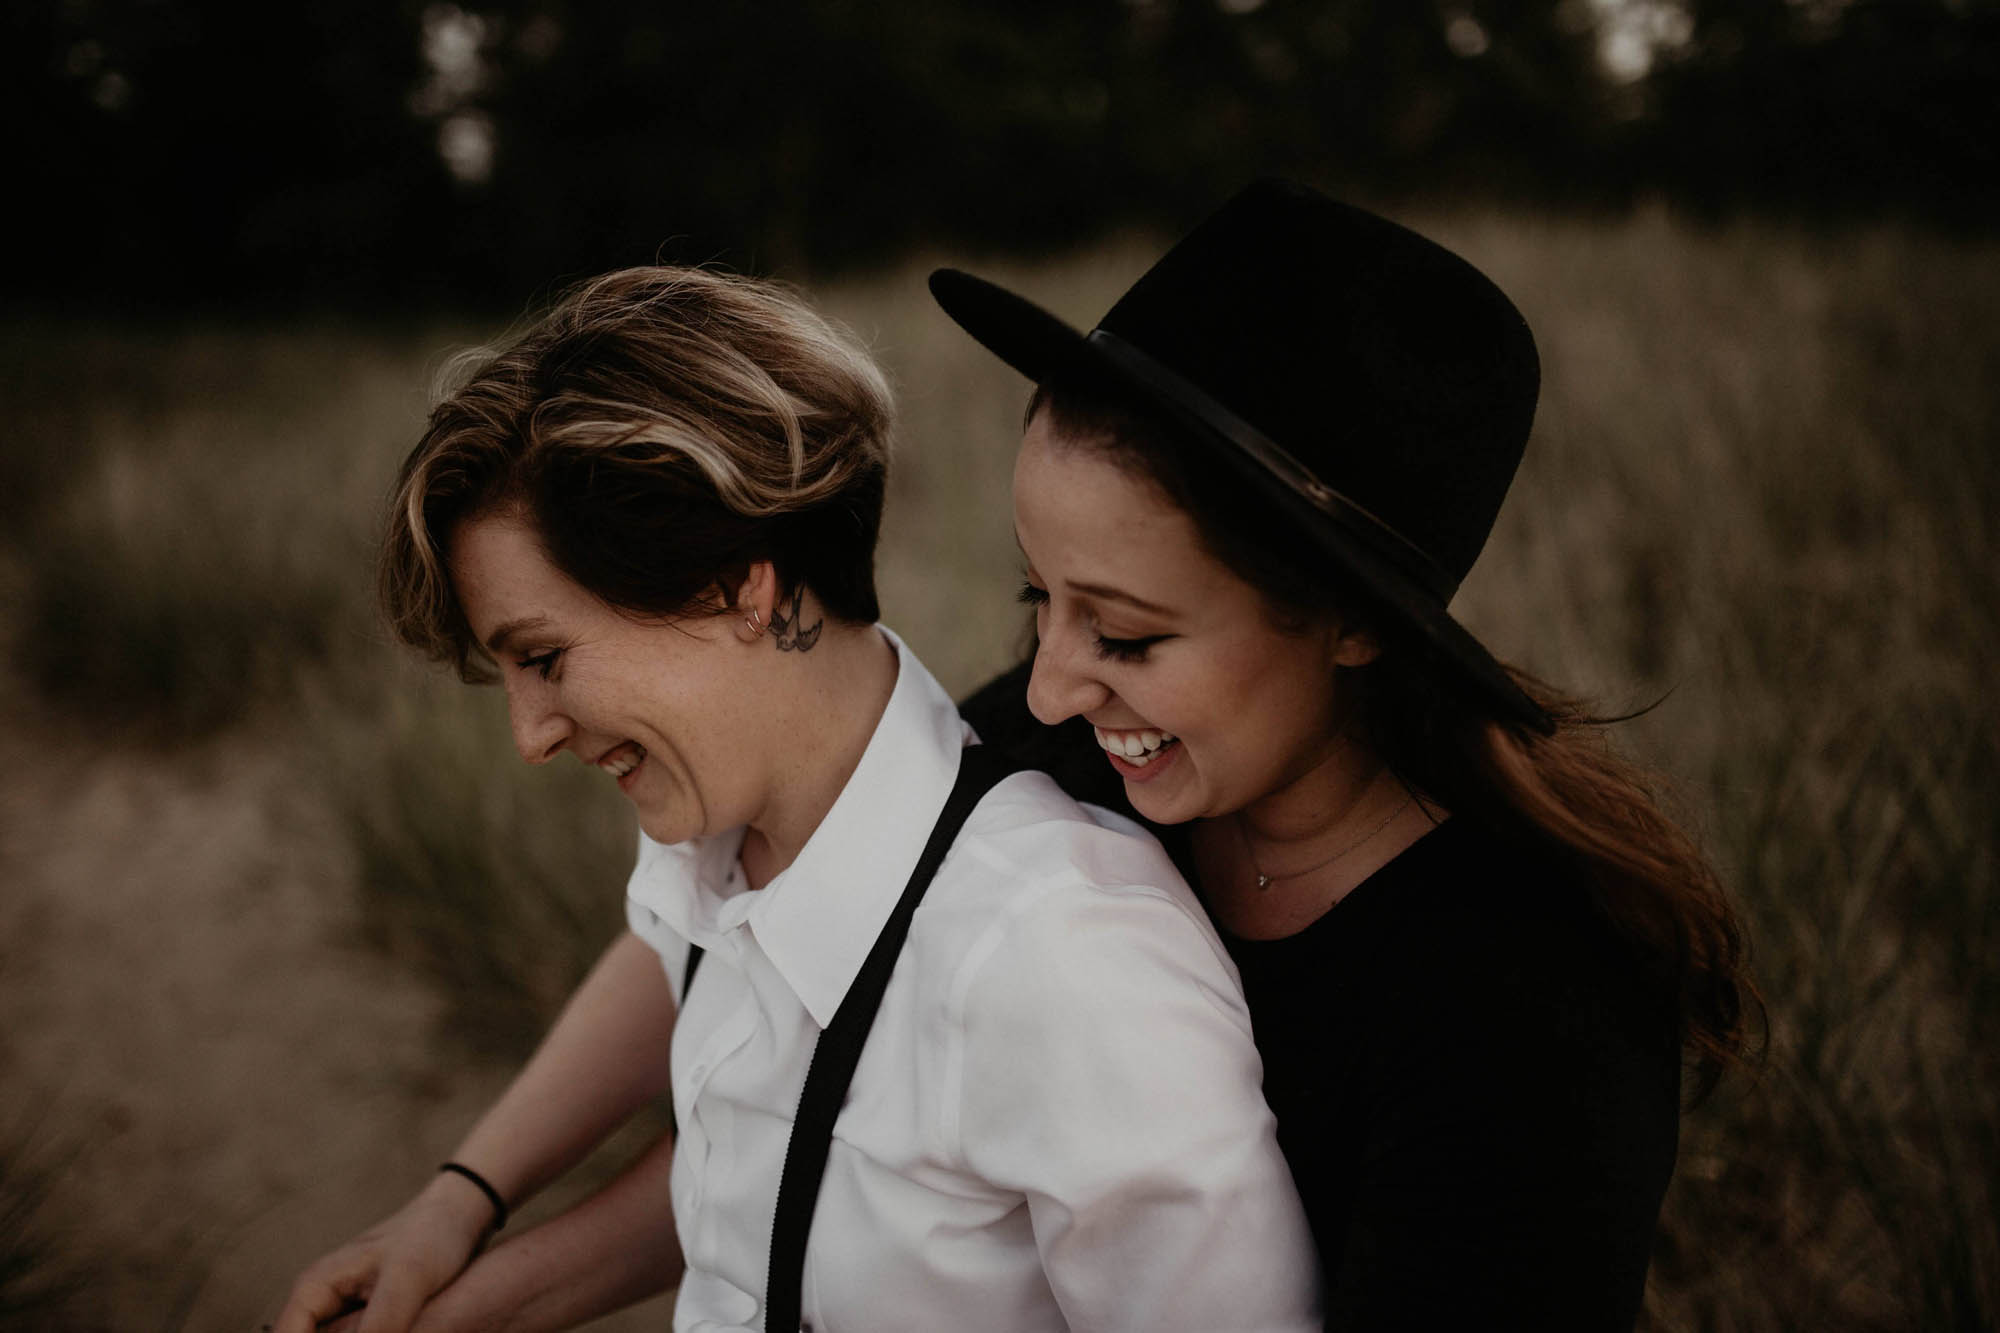 Lesbian Engagement in Illinois - Made to be Mine - Wedding Photographer